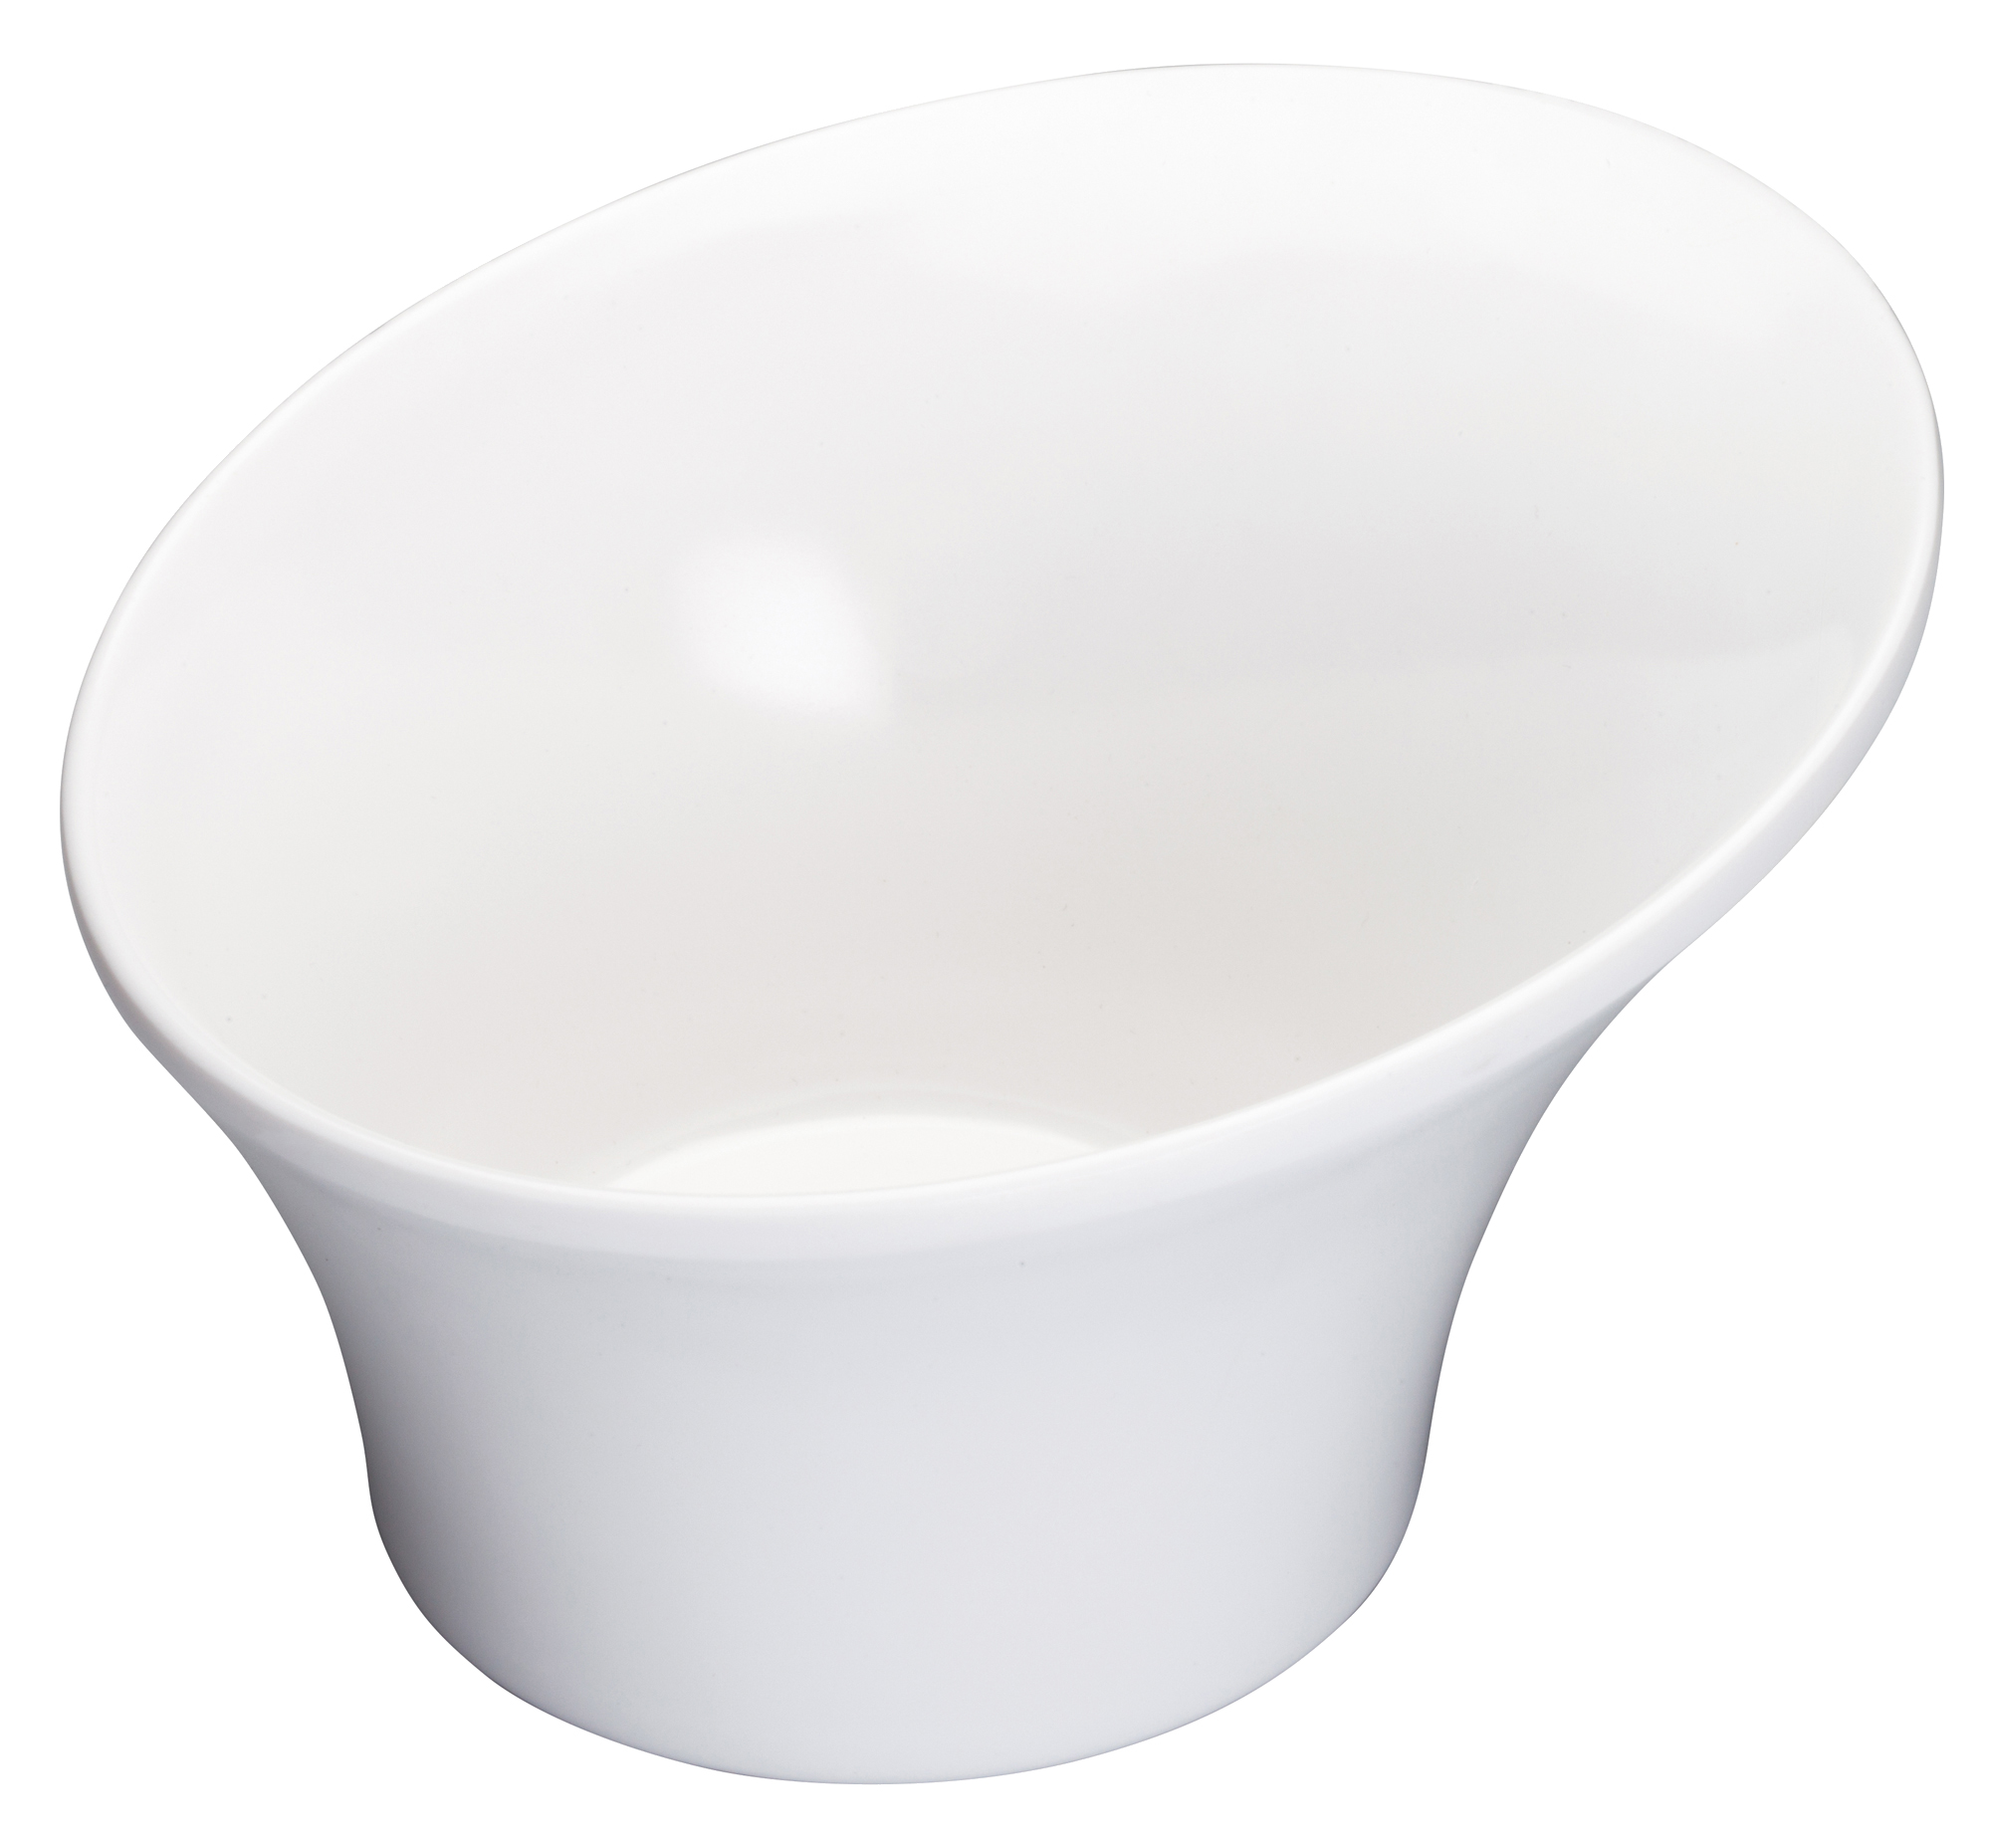 Winco WDM004-202 bowl, plastic,  0 - 31 oz